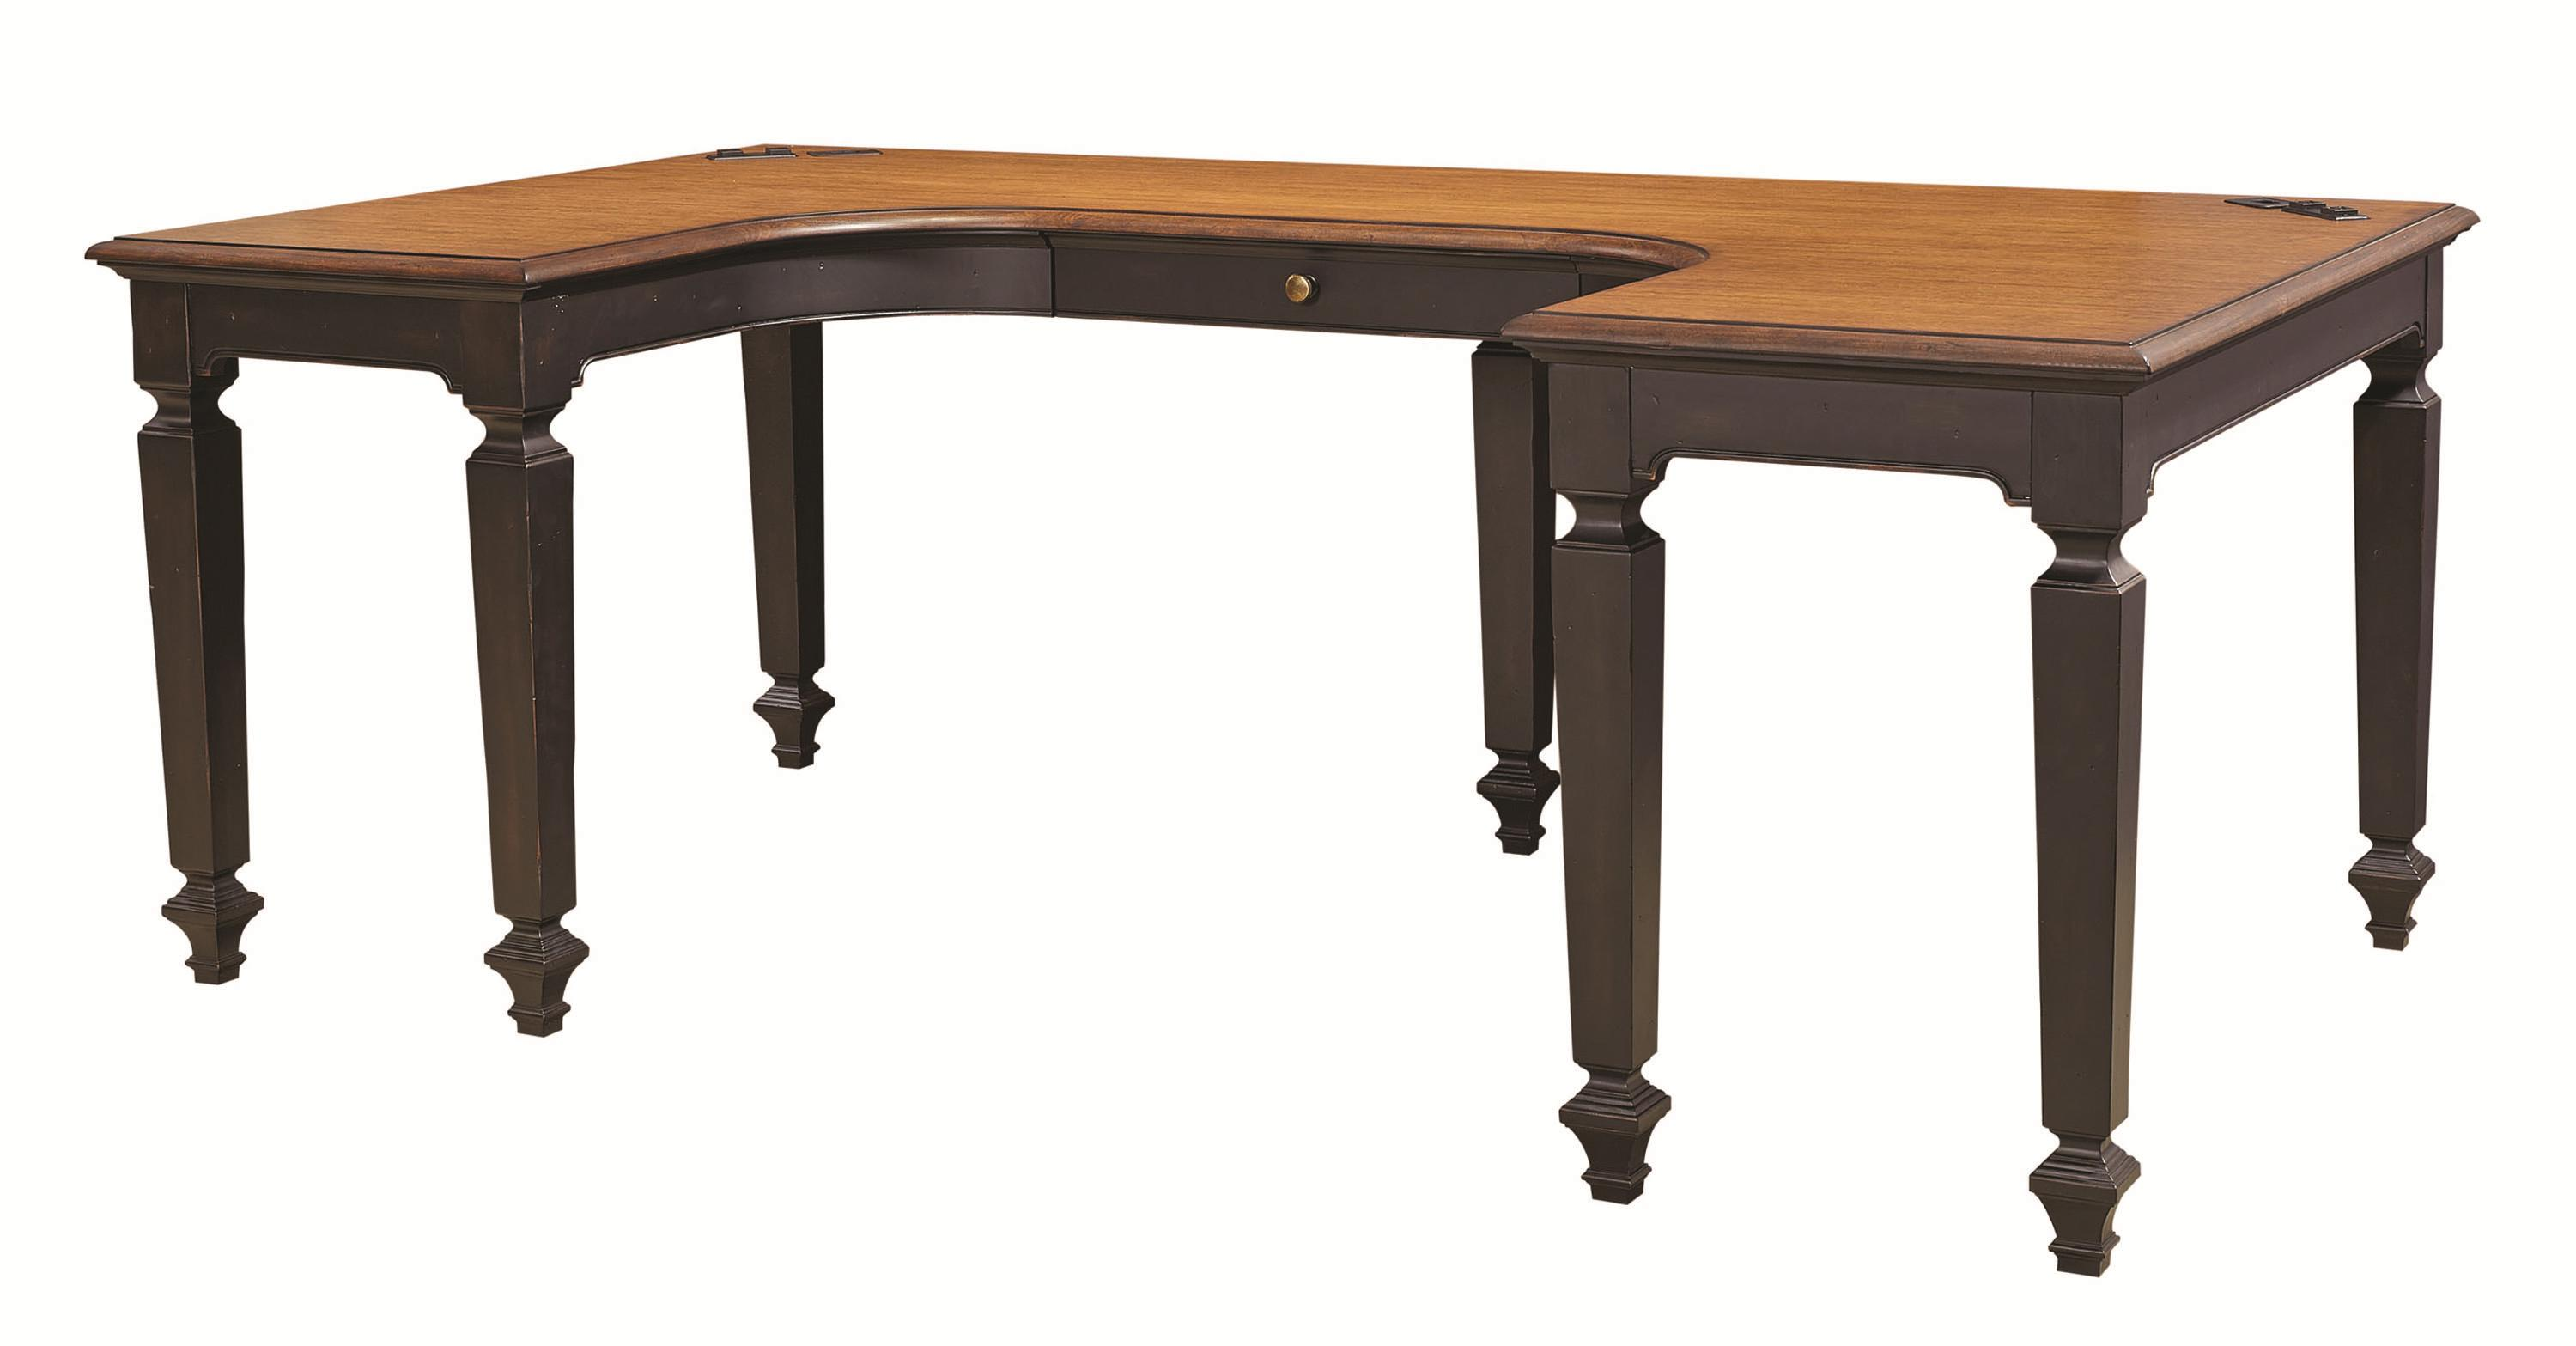 Ravenwood Desk  by Aspenhome at Fisher Home Furnishings